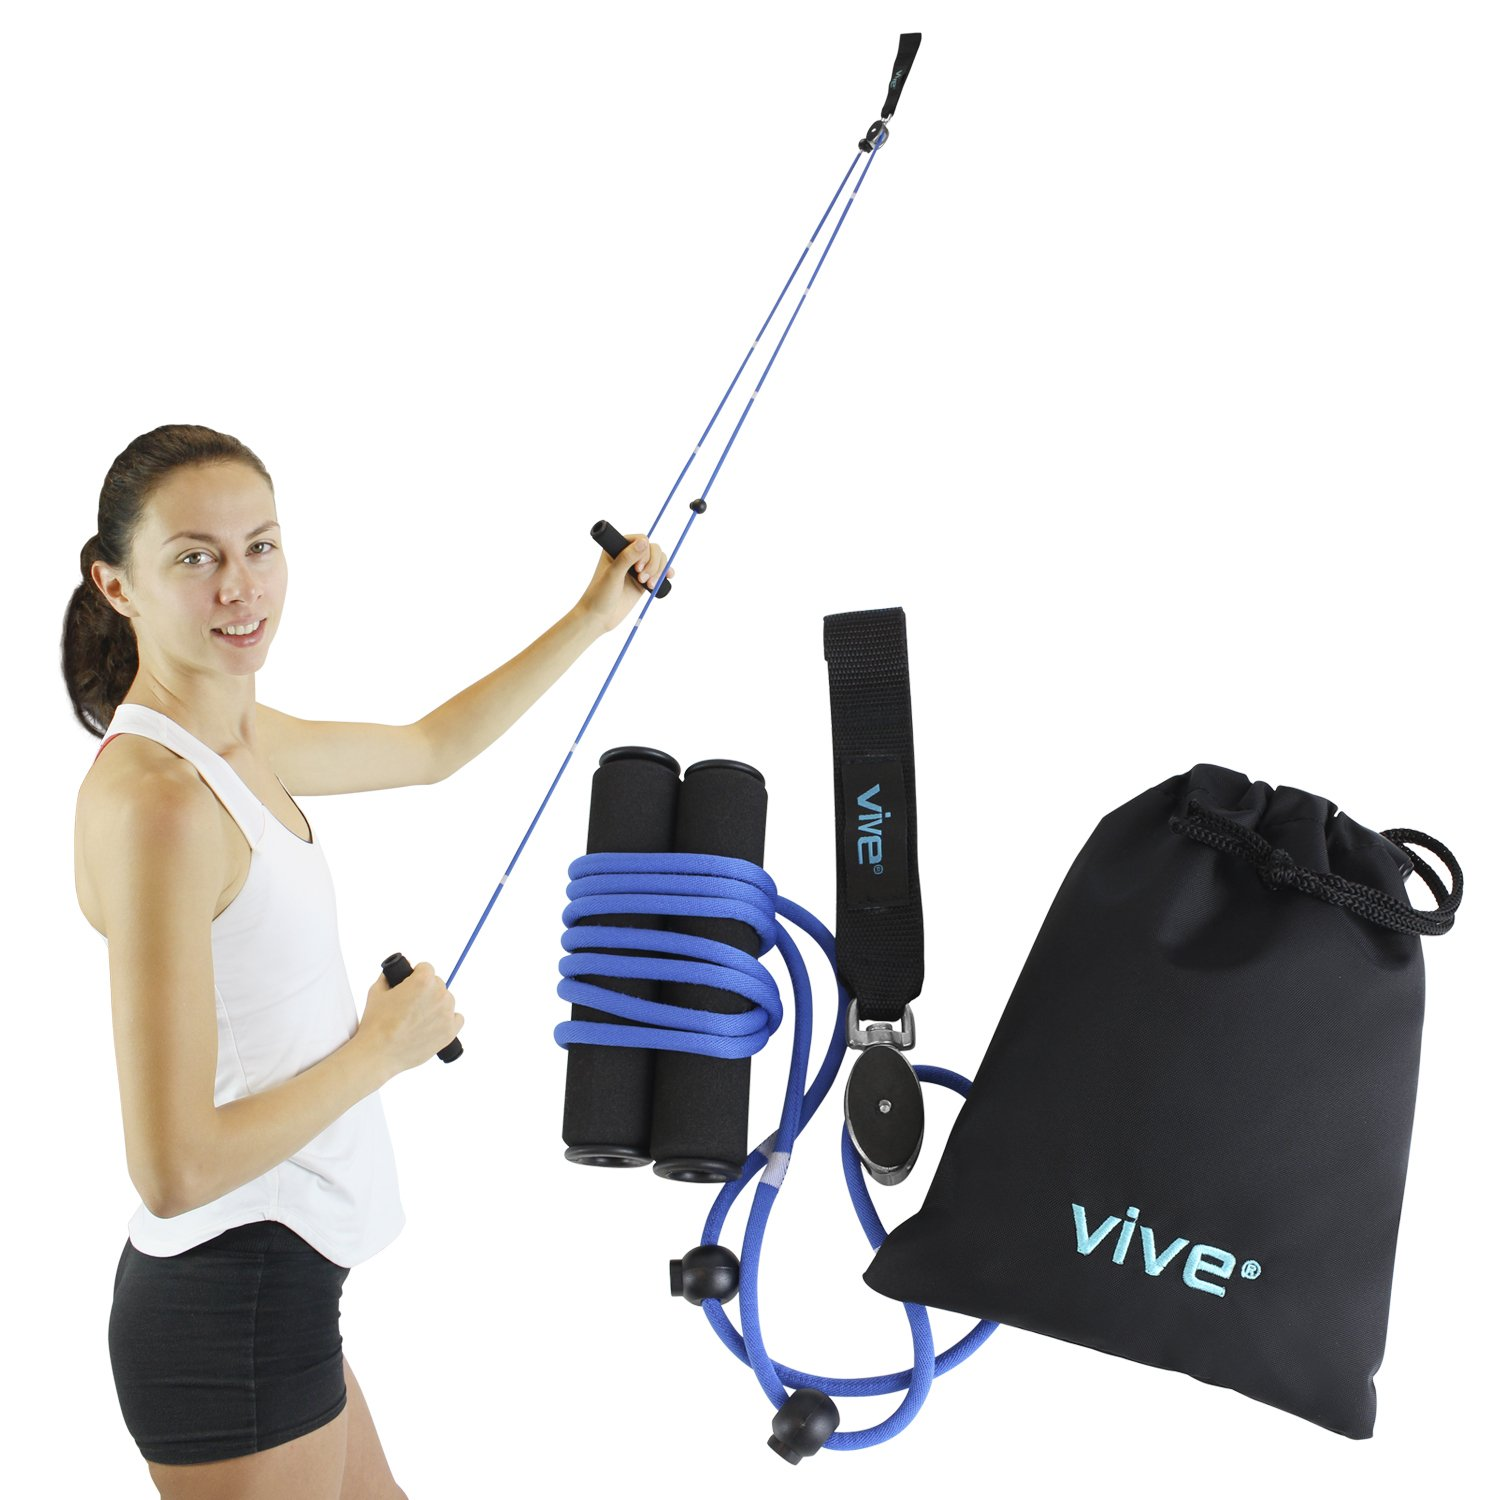 Shoulder Pulley by Vive - Over Door Rehab Exerciser for Rotator Cuff - Home Cable Arm Rehabilitation Exercise System for Frozen Shoulder, Physical Therapy, Flexibility, Range of Motion and Stretching